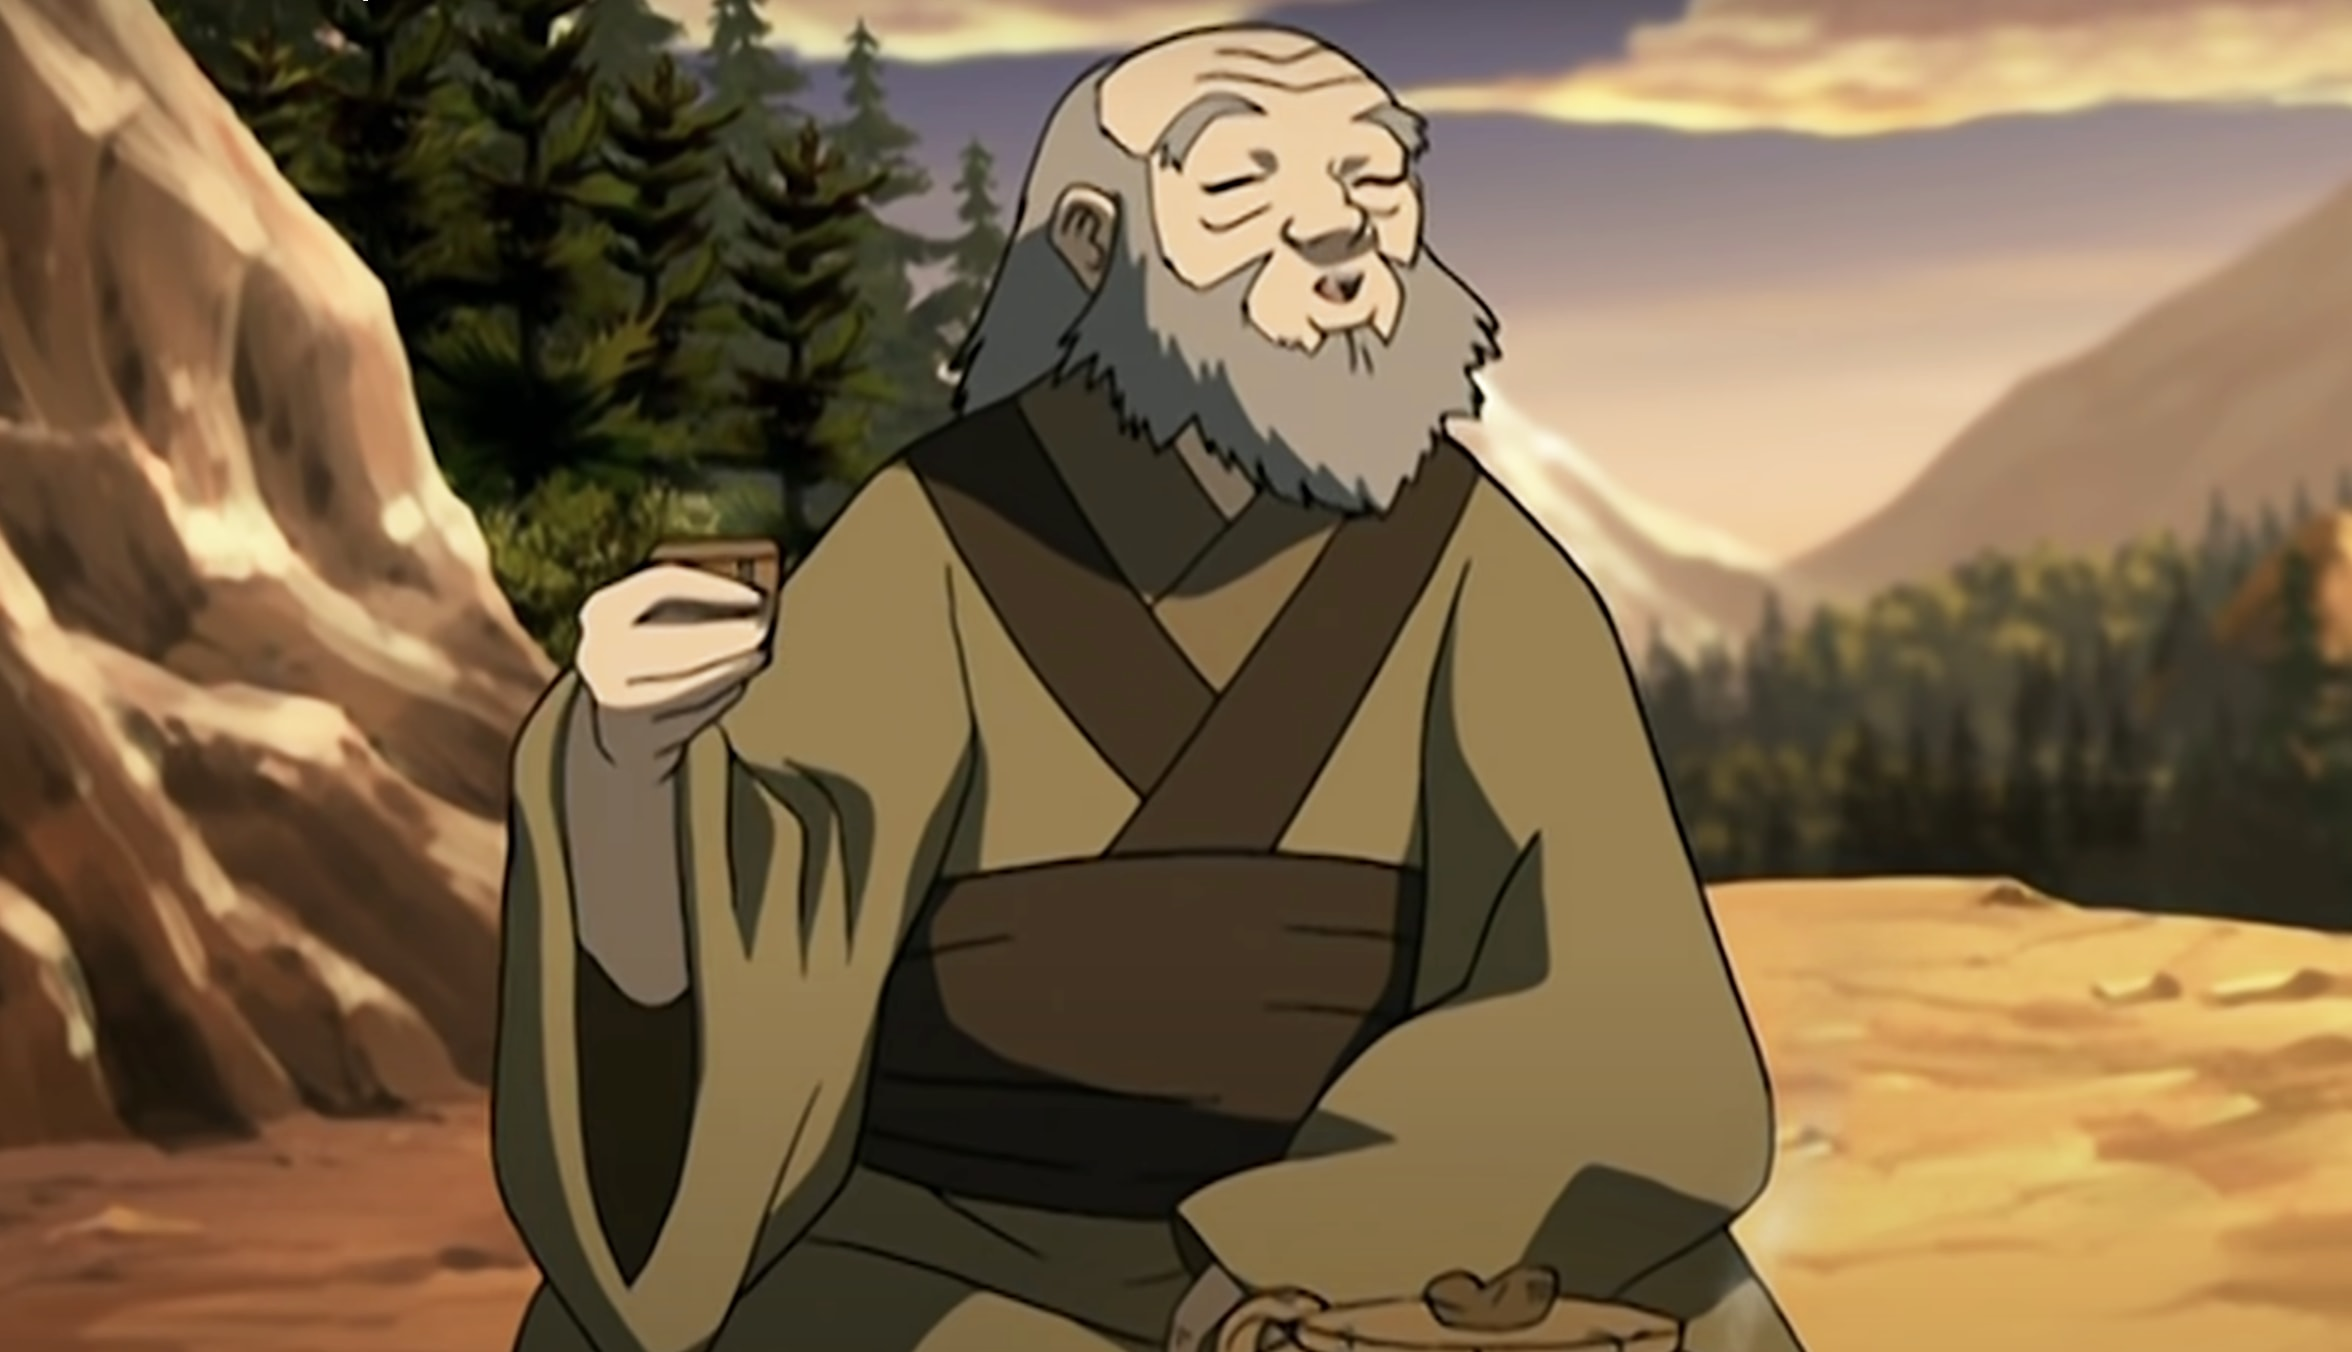 Uncle Iroh enjoying a cup of tea with Toph a mountainside